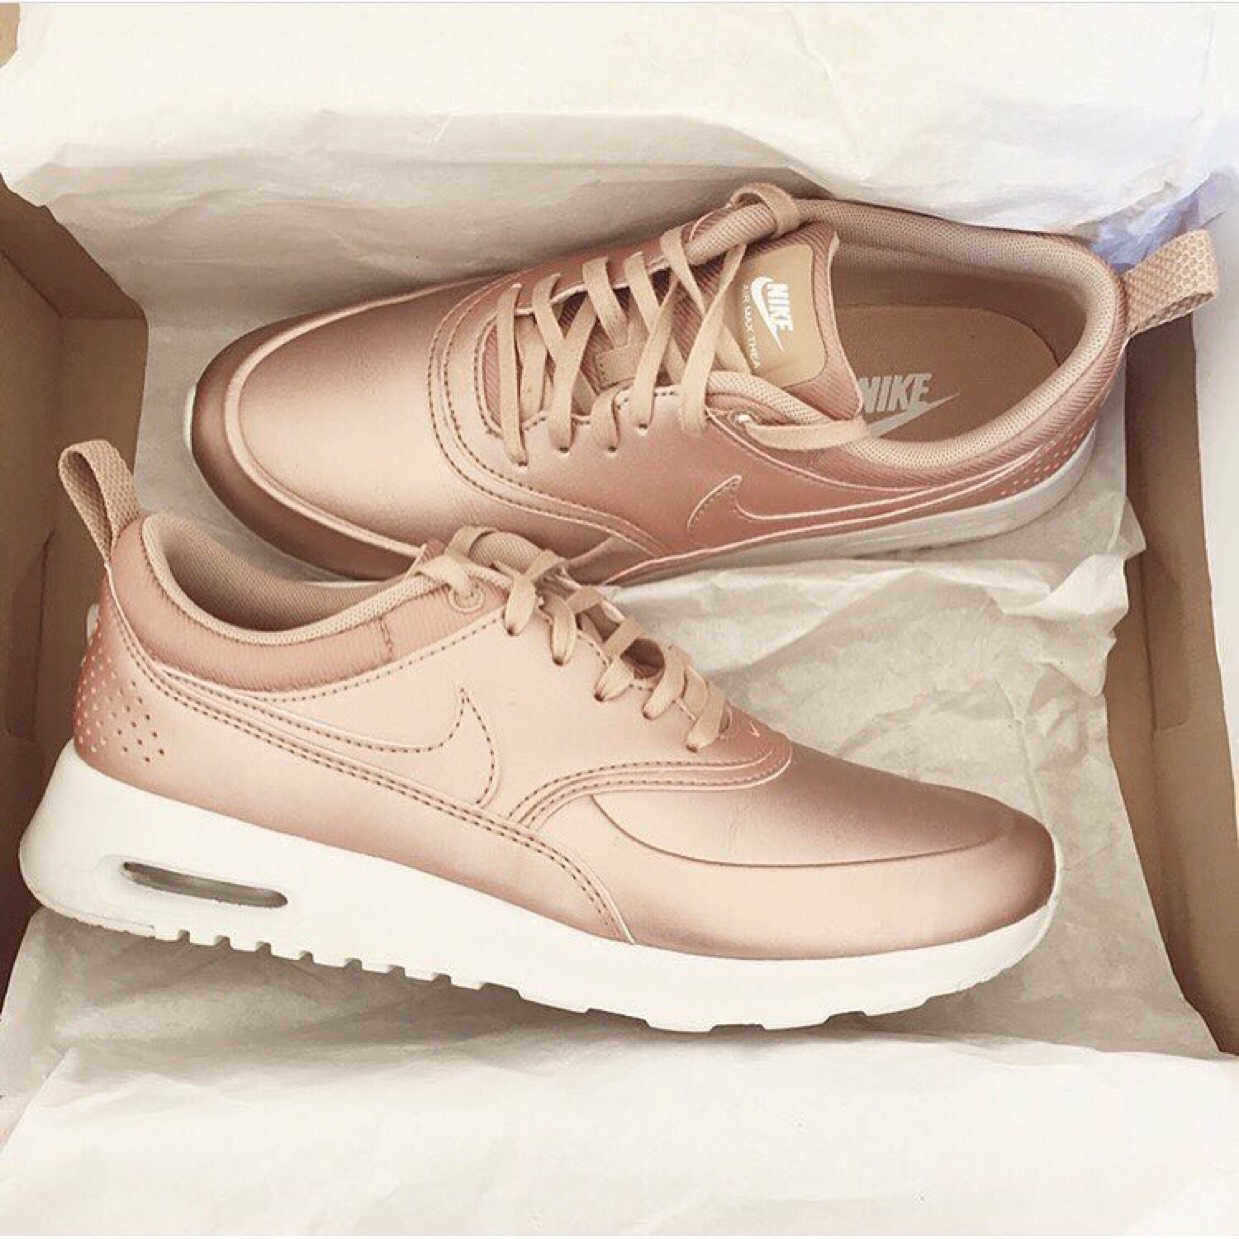 Jiaminnie has gotten nike air max thea in rose gold from Japan!